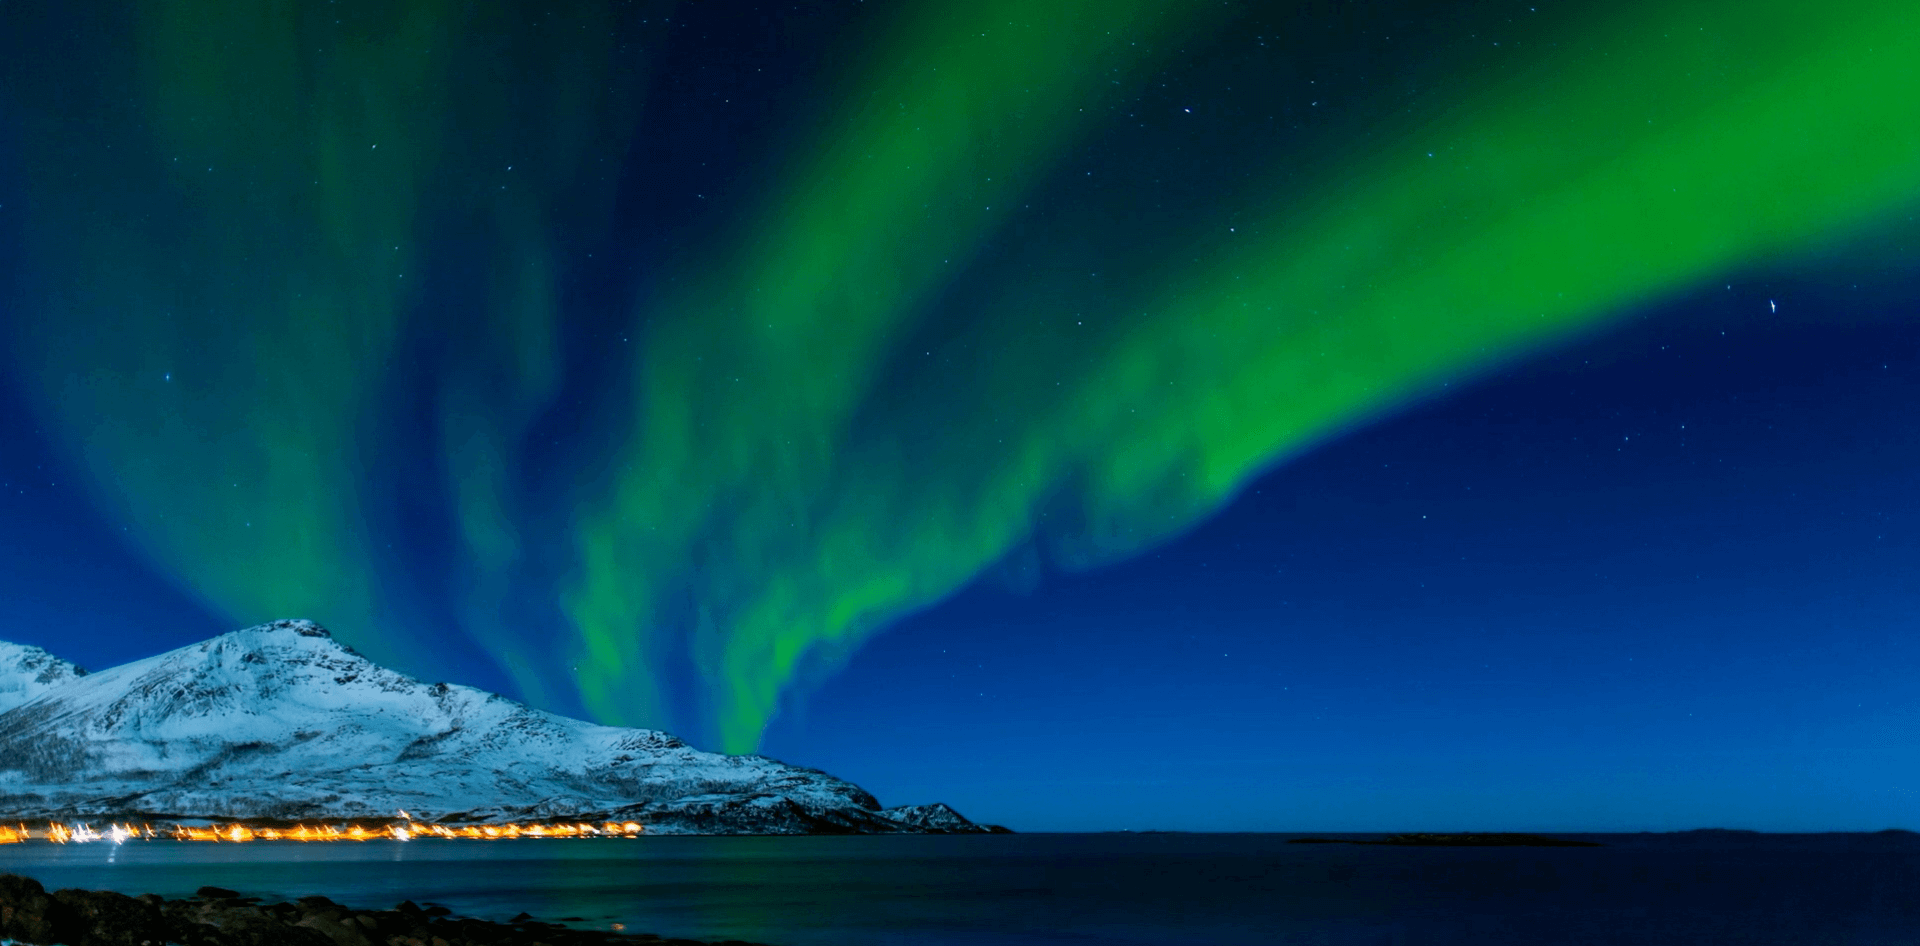 HUAWEI presents the incredible sound of Northern Lights, a world-first in AI